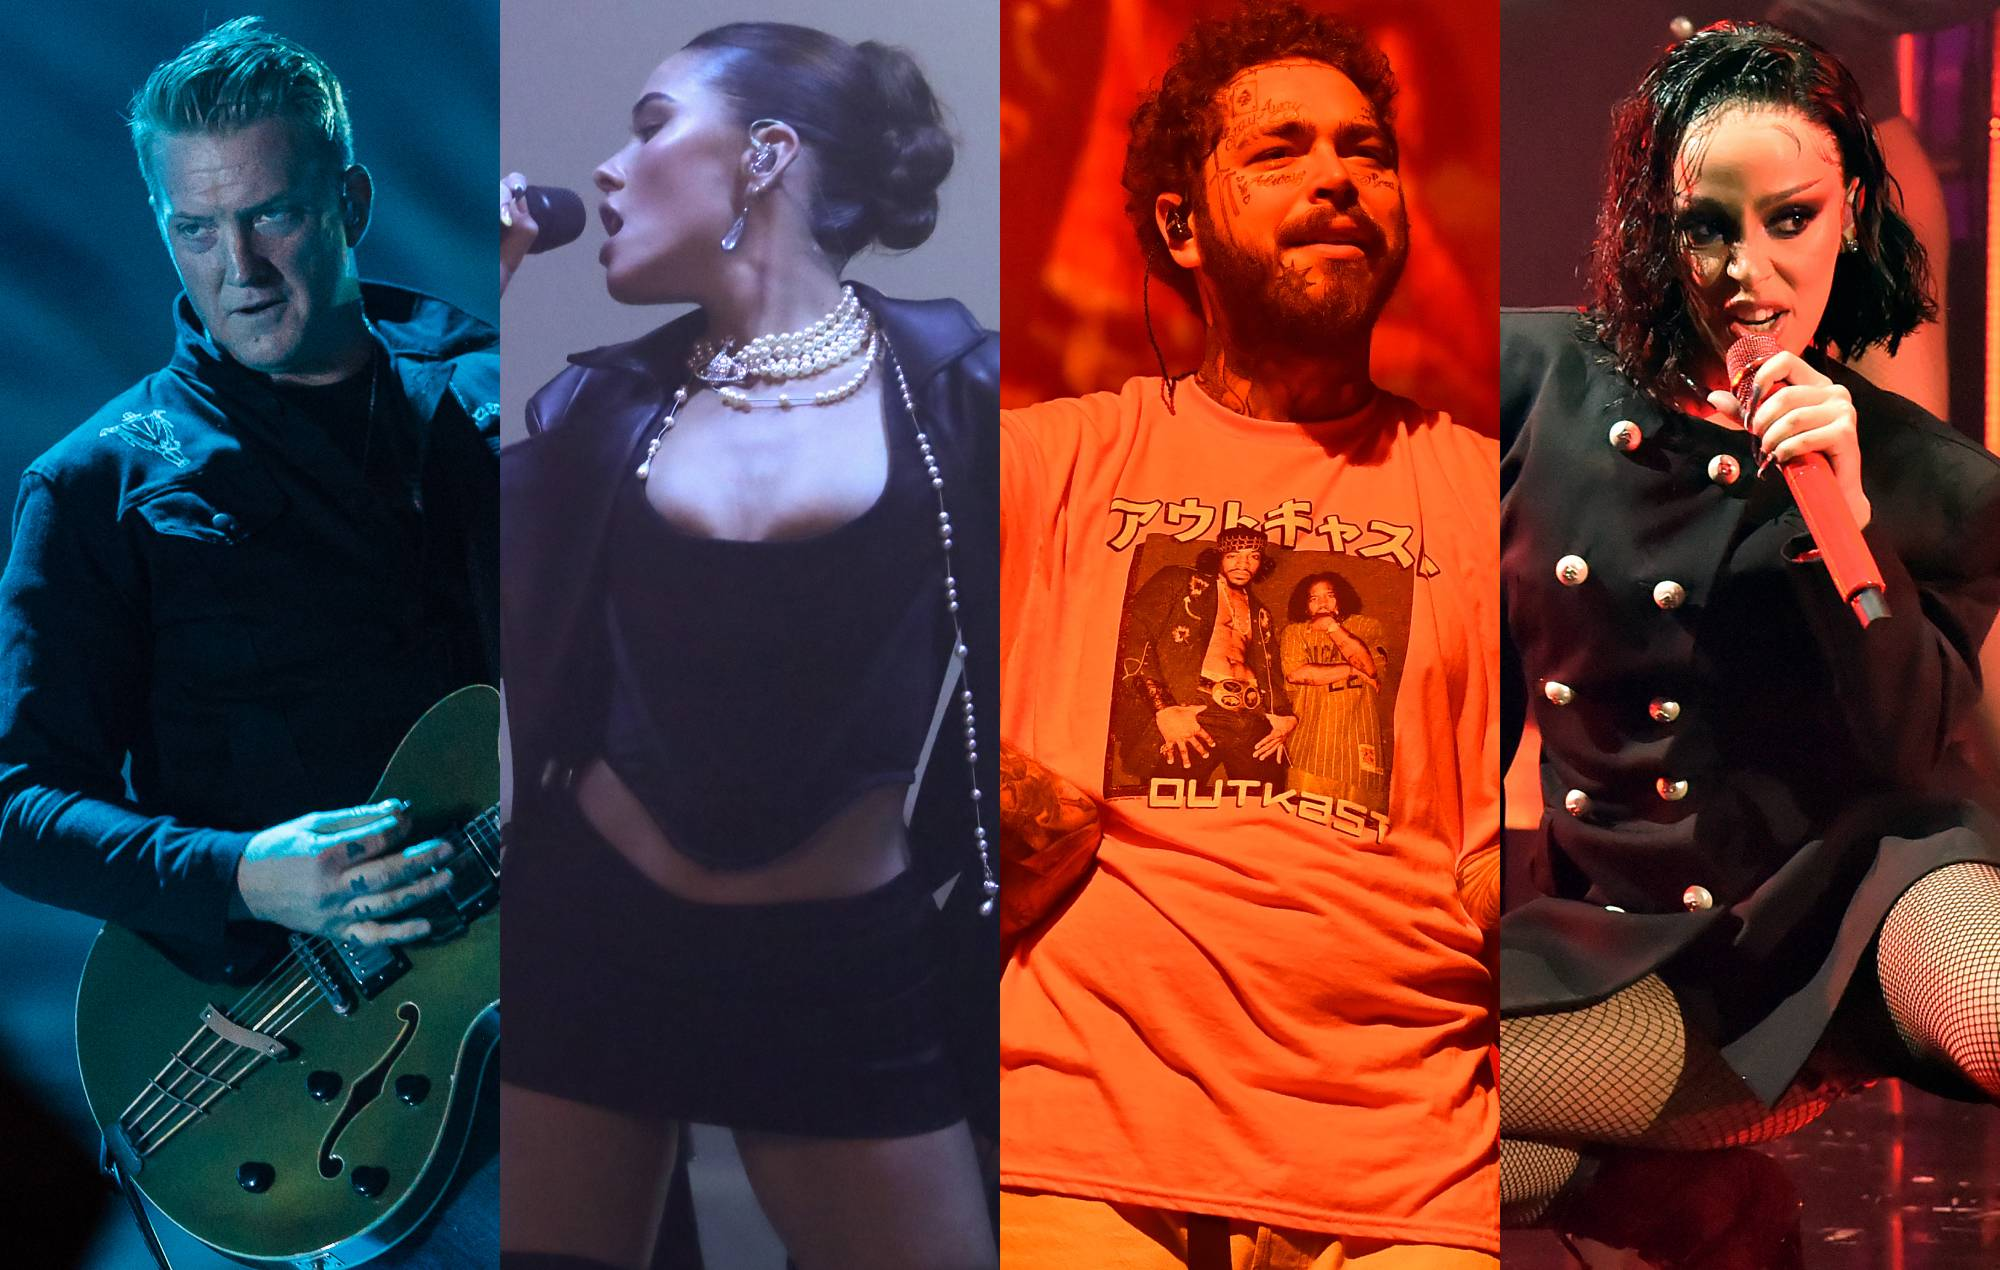 Queens Of The Stone Age, Madison Beer, Post Malone and Doja Cat are among the US acts set to play Reading & Leeds 2021. Credit: Mauricio Santana/Rich Fury/Paras Griffin/Jeff Kravitz/Getty Images)